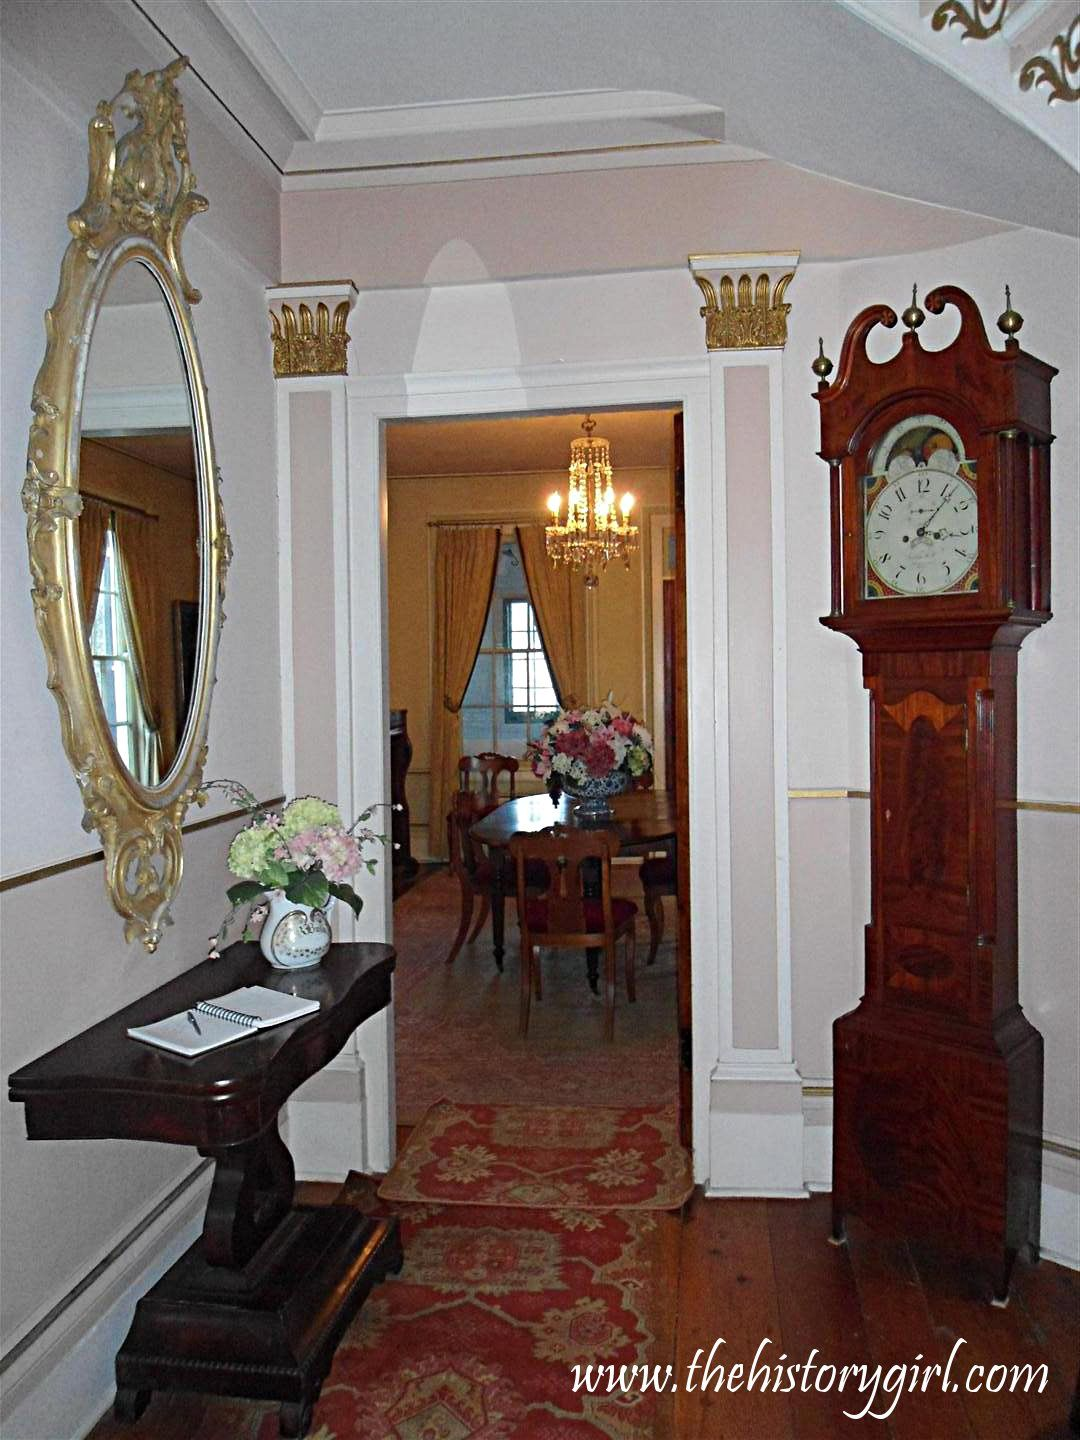 The main foyer of the 1845 Doric House in Flemington. The home is headquarters to the Hunterdon County Historical Society. The home was built in the Greek Revival style by Mahlon Fisher, an architect/builder of the time, whose work can be seen at three other buildings in Flemington. Throughout its history, this building served as an Odd Fellow Hall, restaurant, and was used by a church before being purchased in 1969 by the Society and restored. Discover more history @ www.thehistorygirl.com